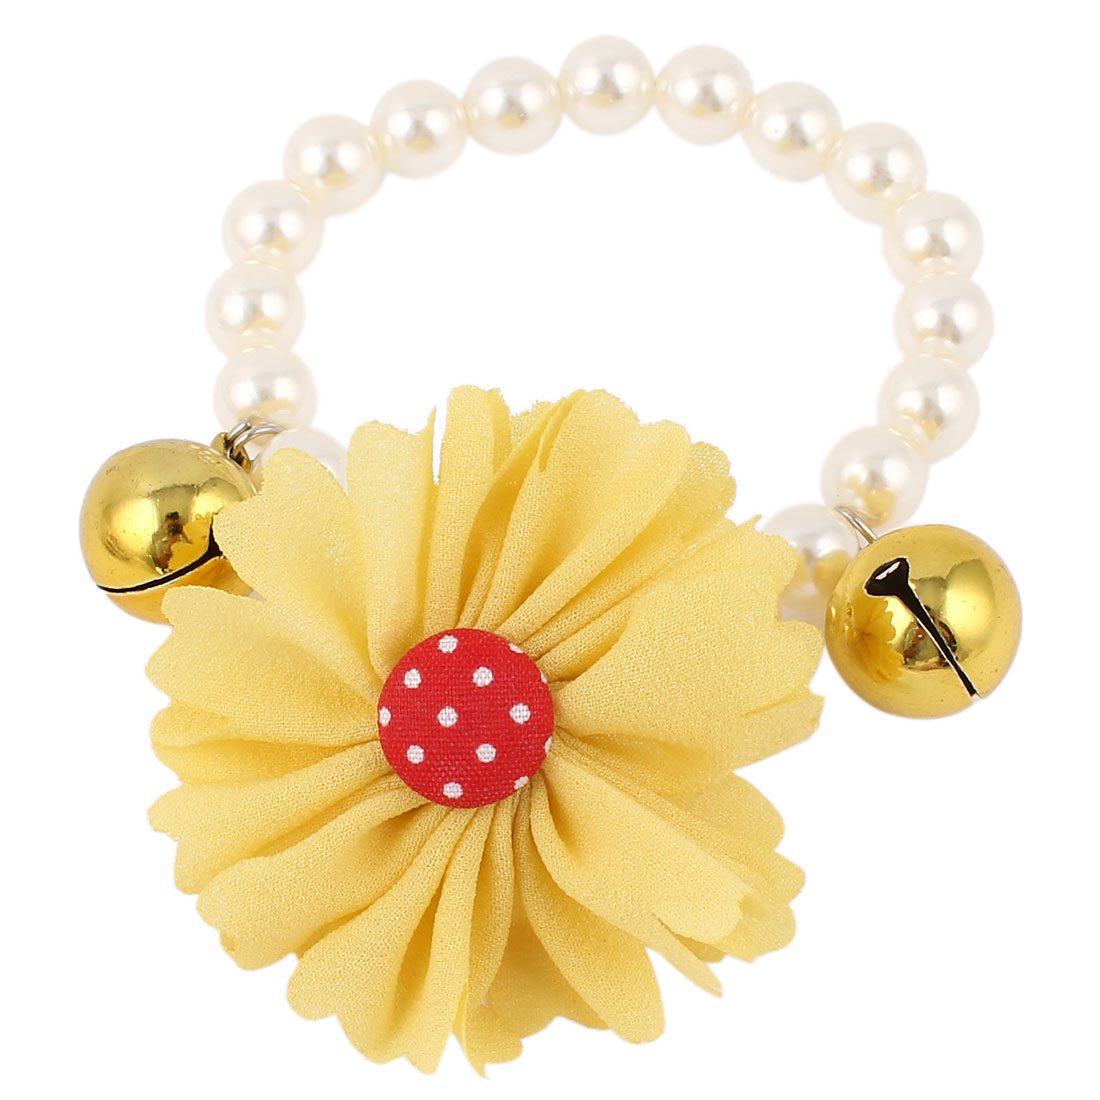 Metal Bell Pendant Flower Accent Pet Dog Plastic Beads Imitation Pearls Collar Necklace White Yellow XS